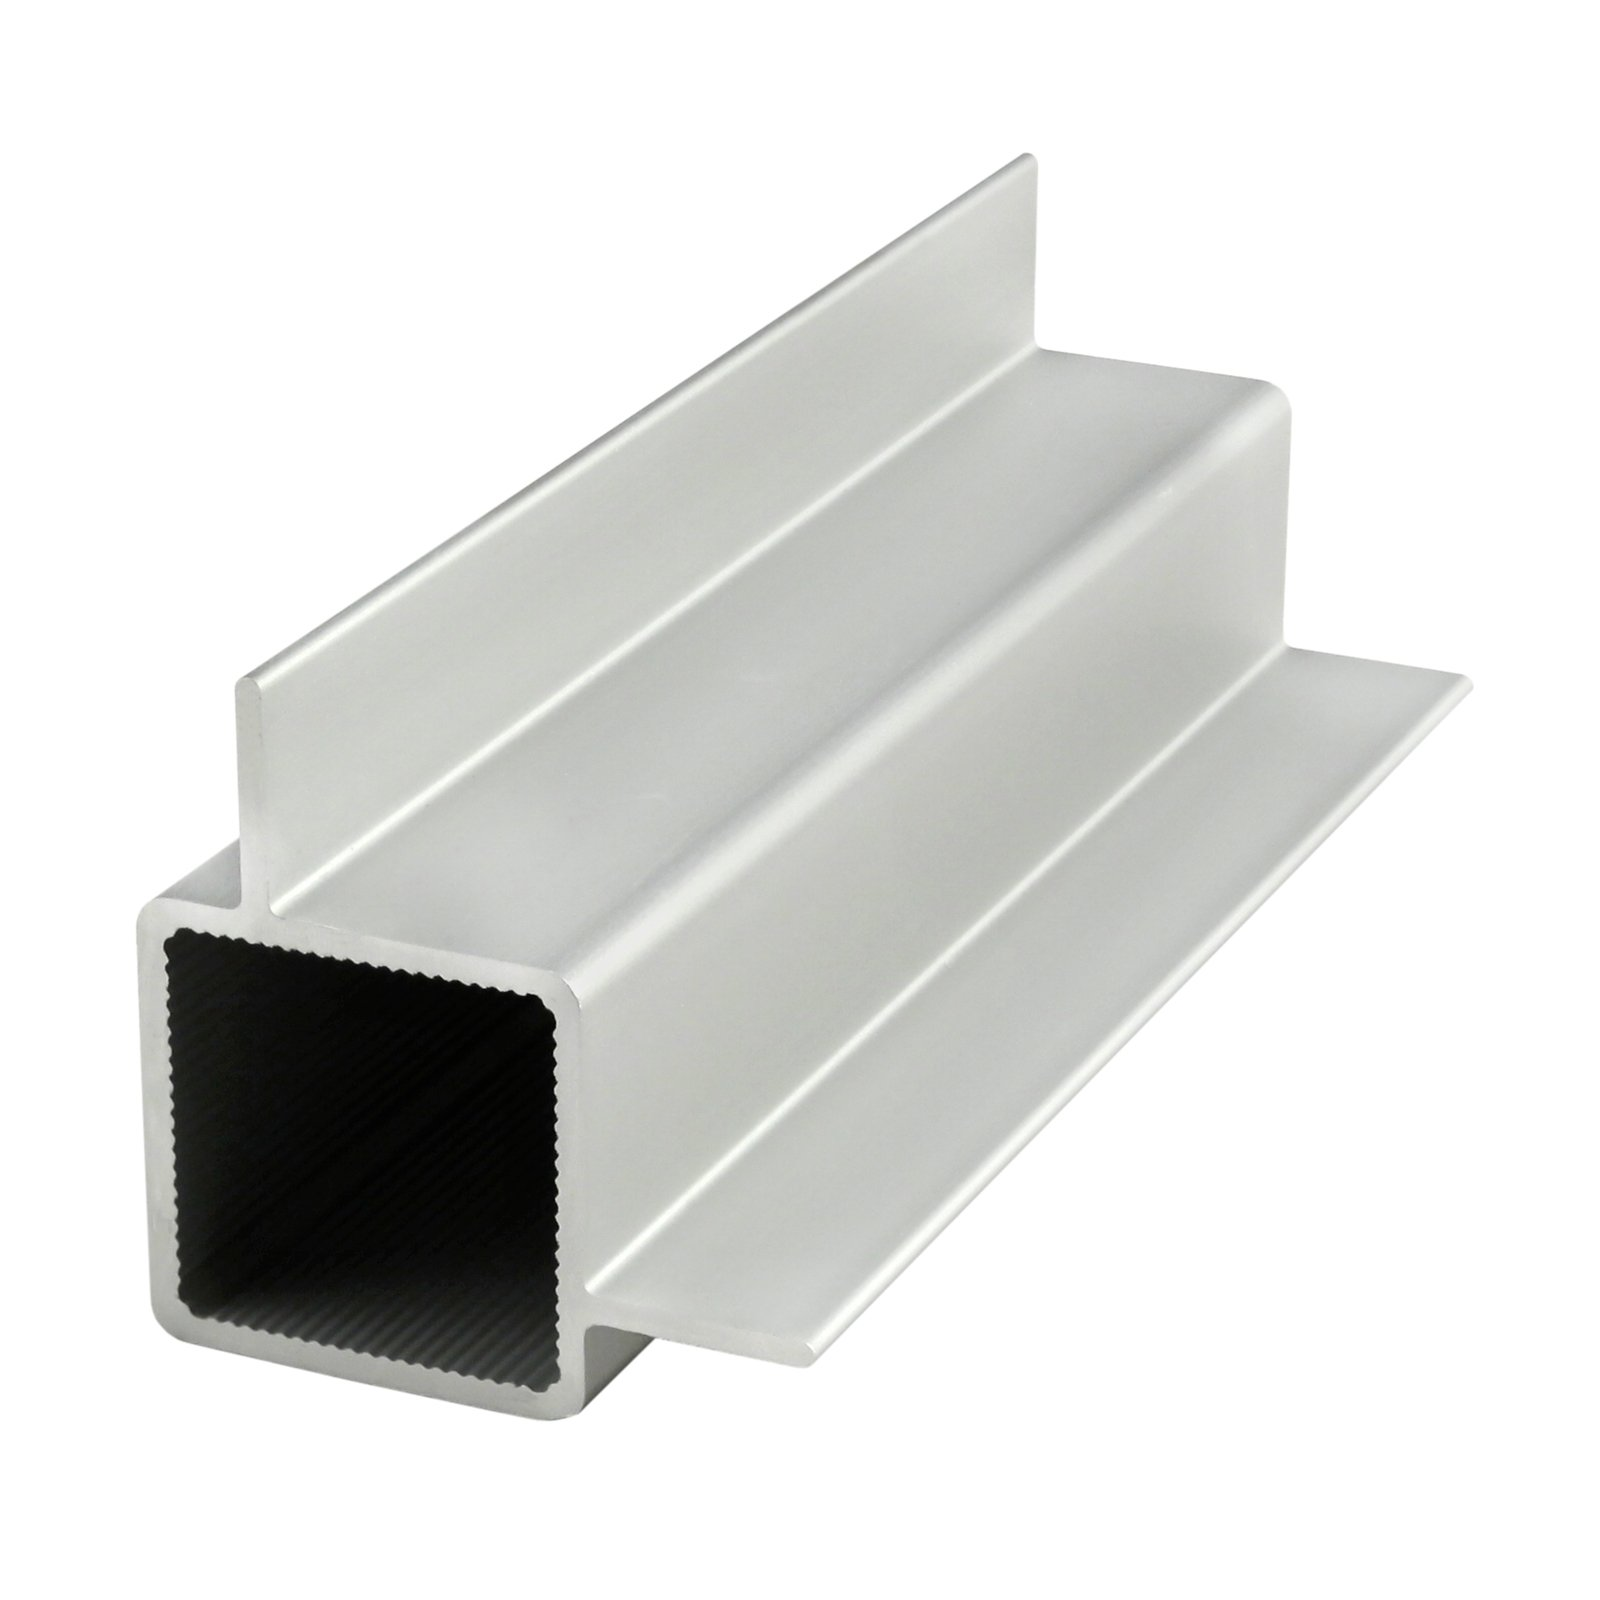 80/20 Inc., 9010, Quick Frame 1''X1'' Square Right Angle Double Flanged Tube X 72''